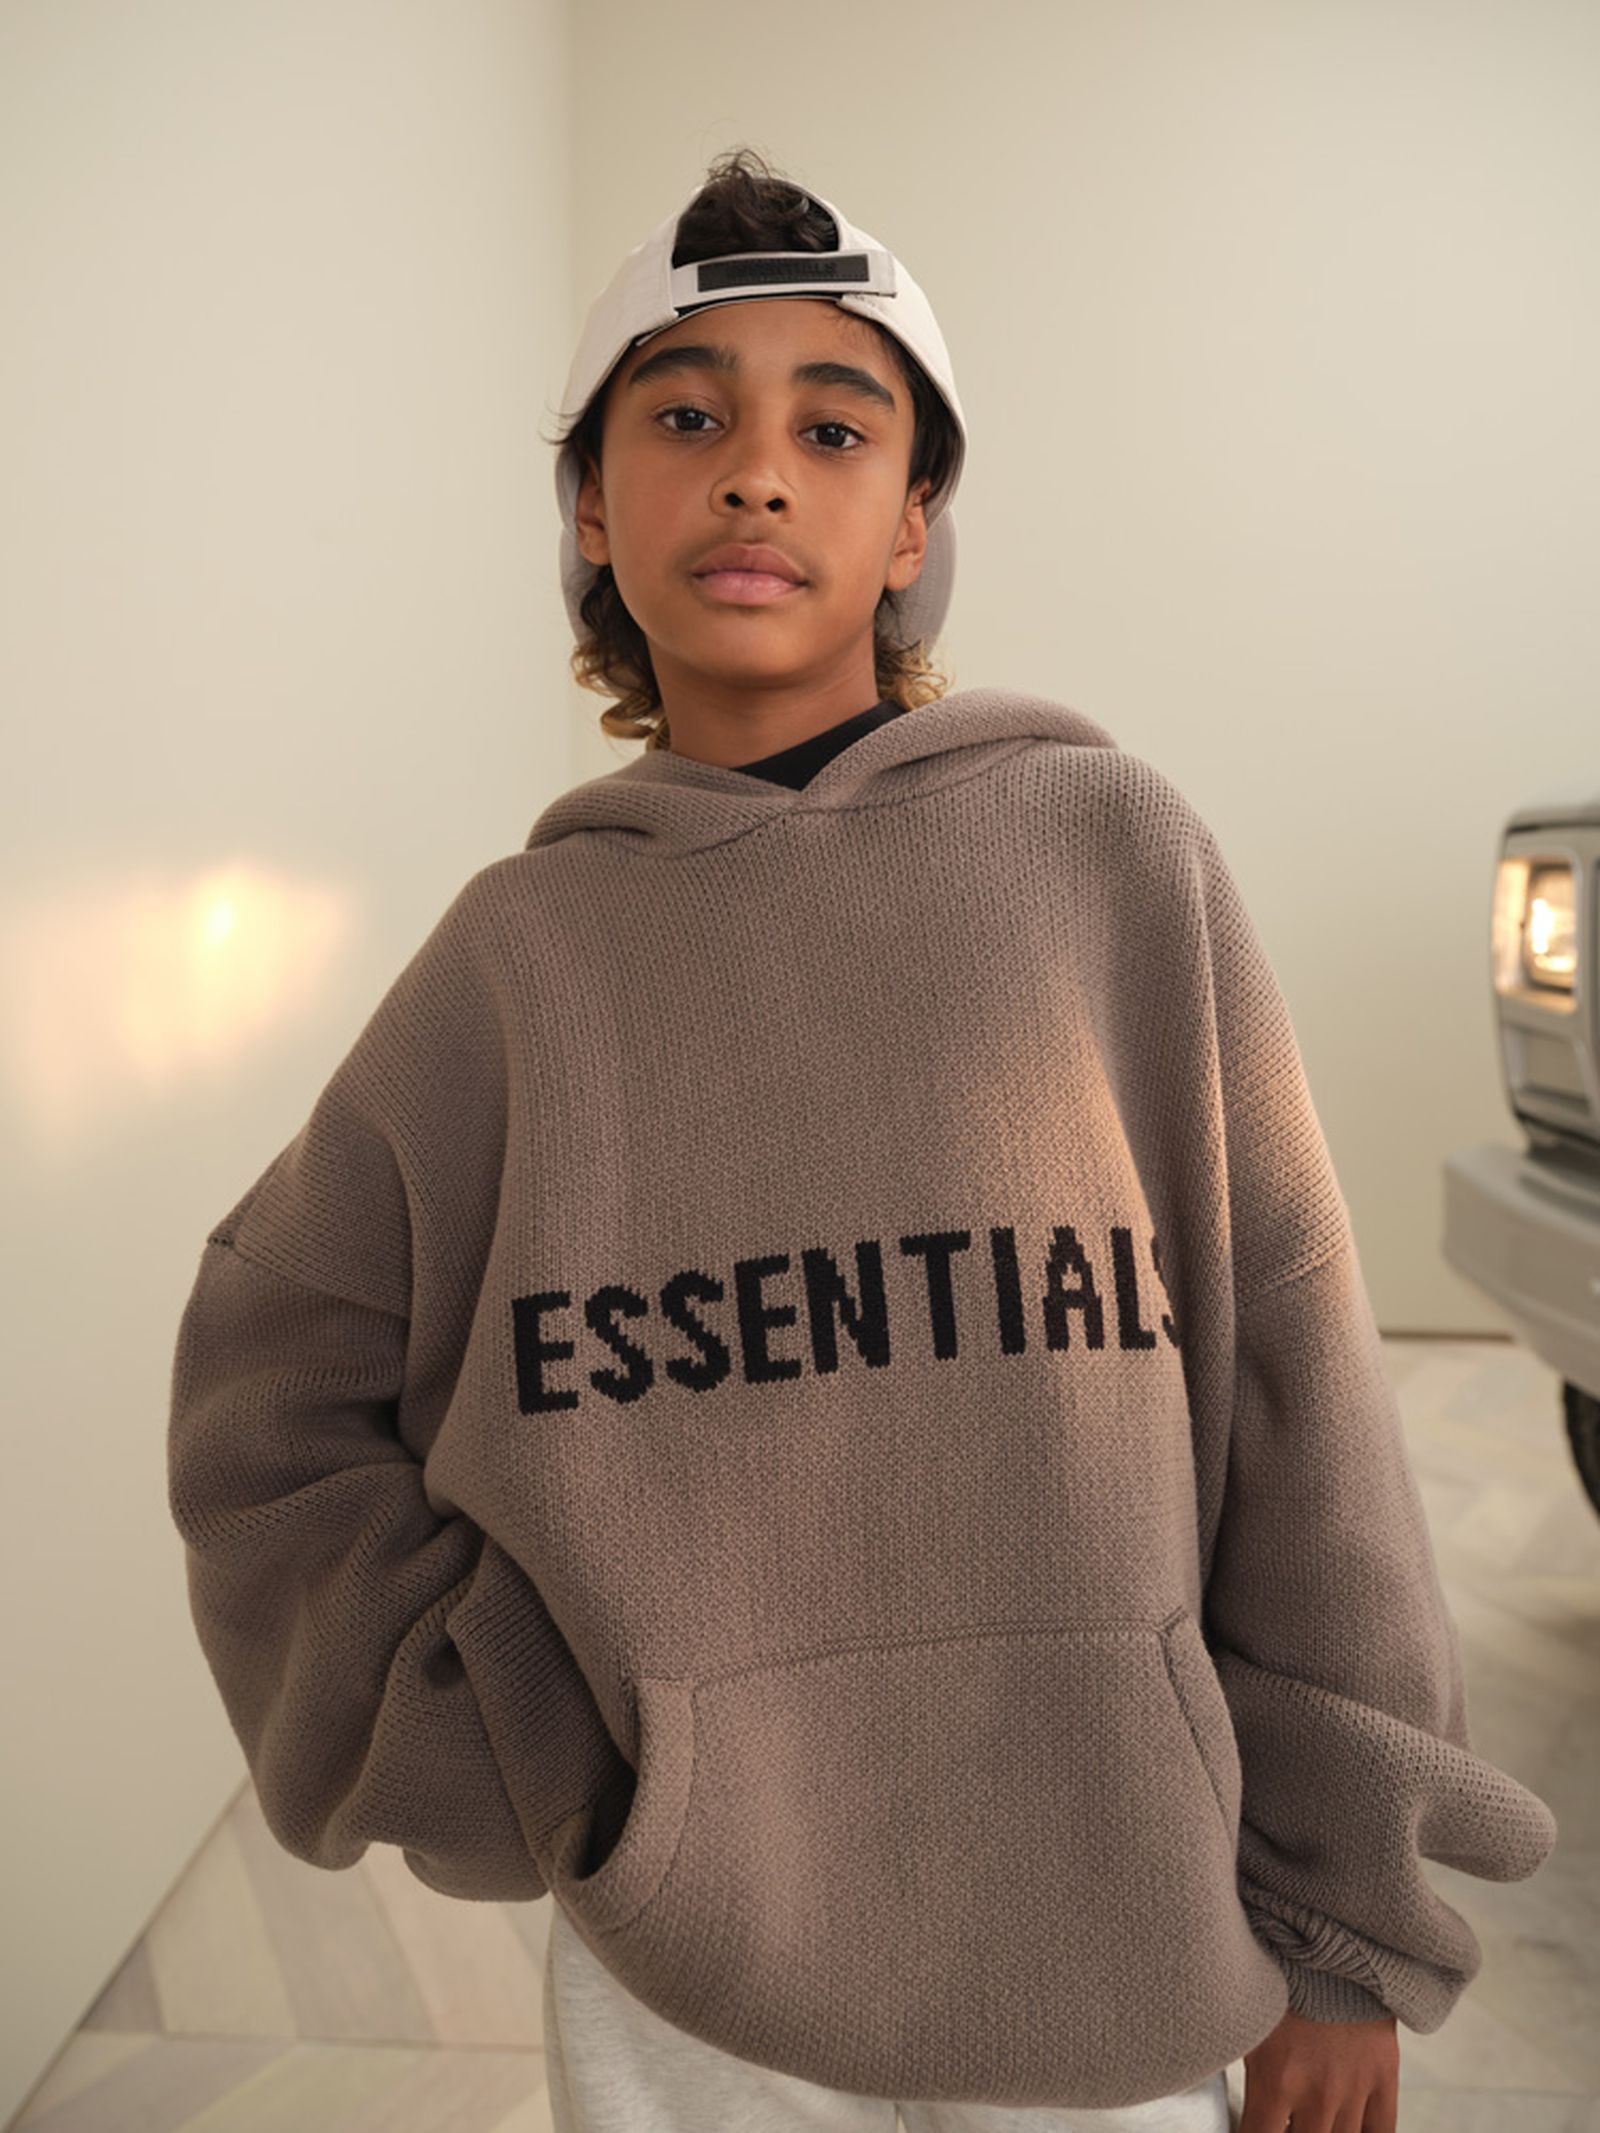 fear-god-essential-kids-collection-21